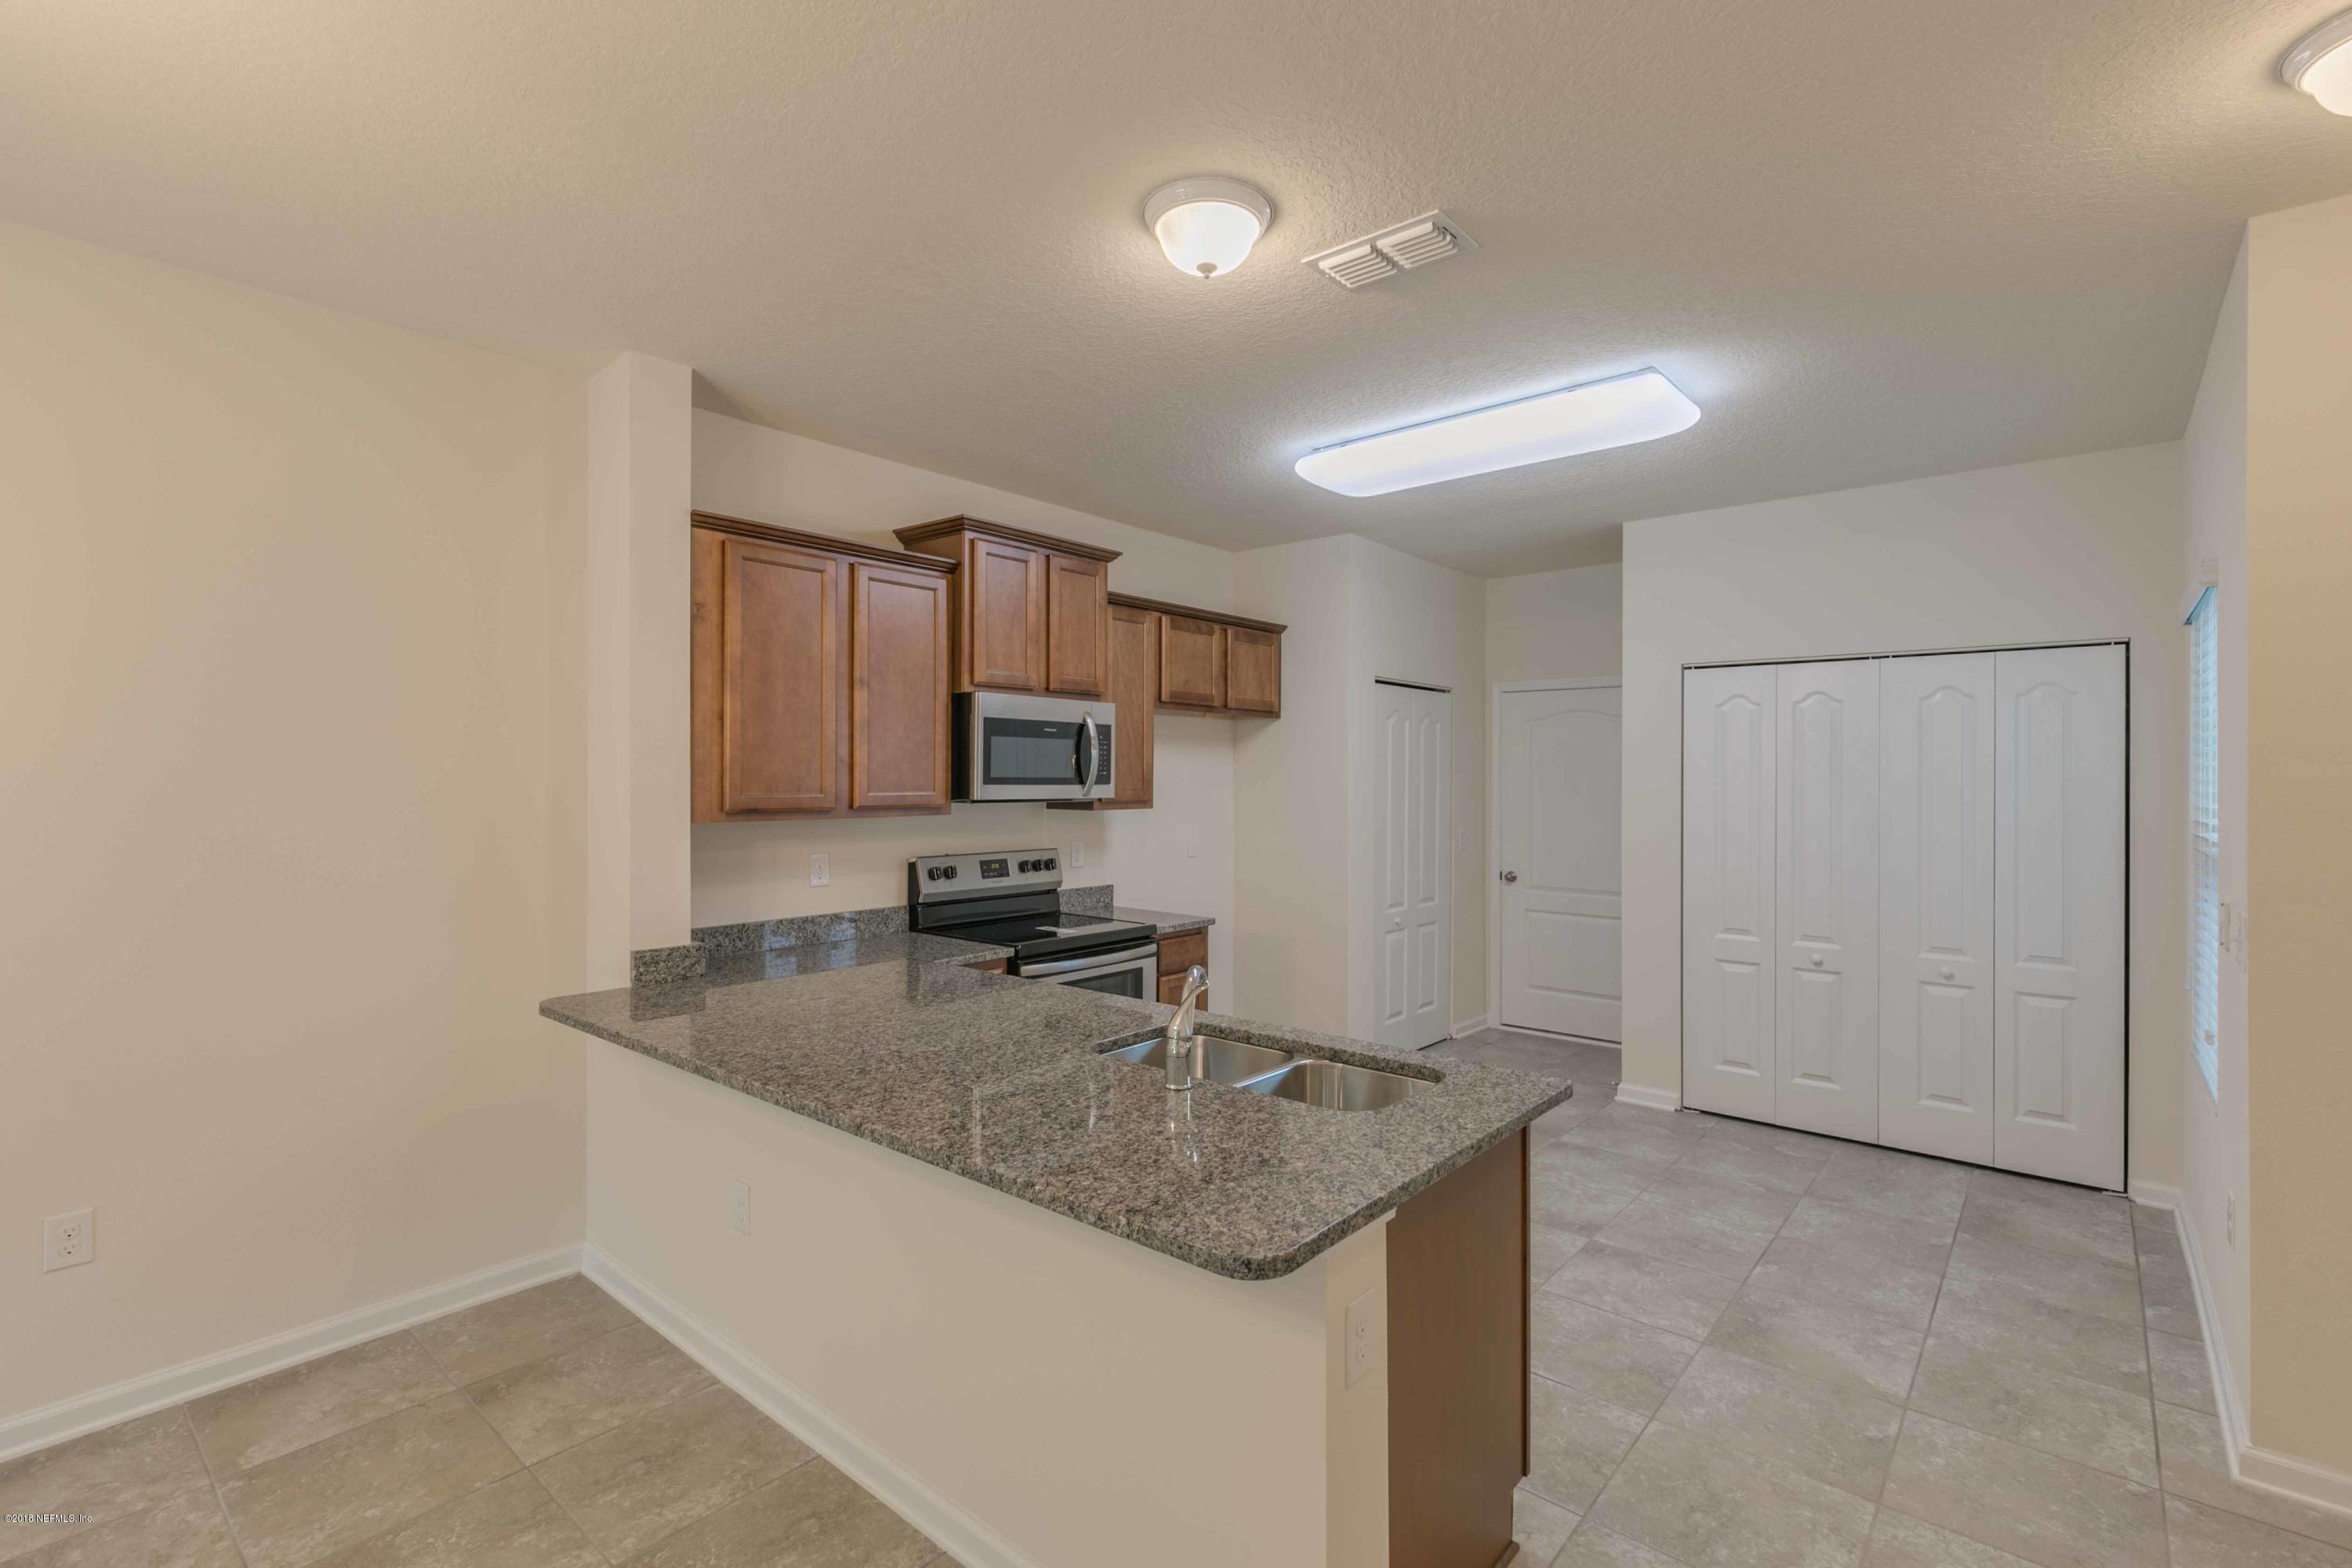 729 SERVIA, ST JOHNS, FLORIDA 32259, 2 Bedrooms Bedrooms, ,2 BathroomsBathrooms,Residential - townhome,For sale,SERVIA,974692